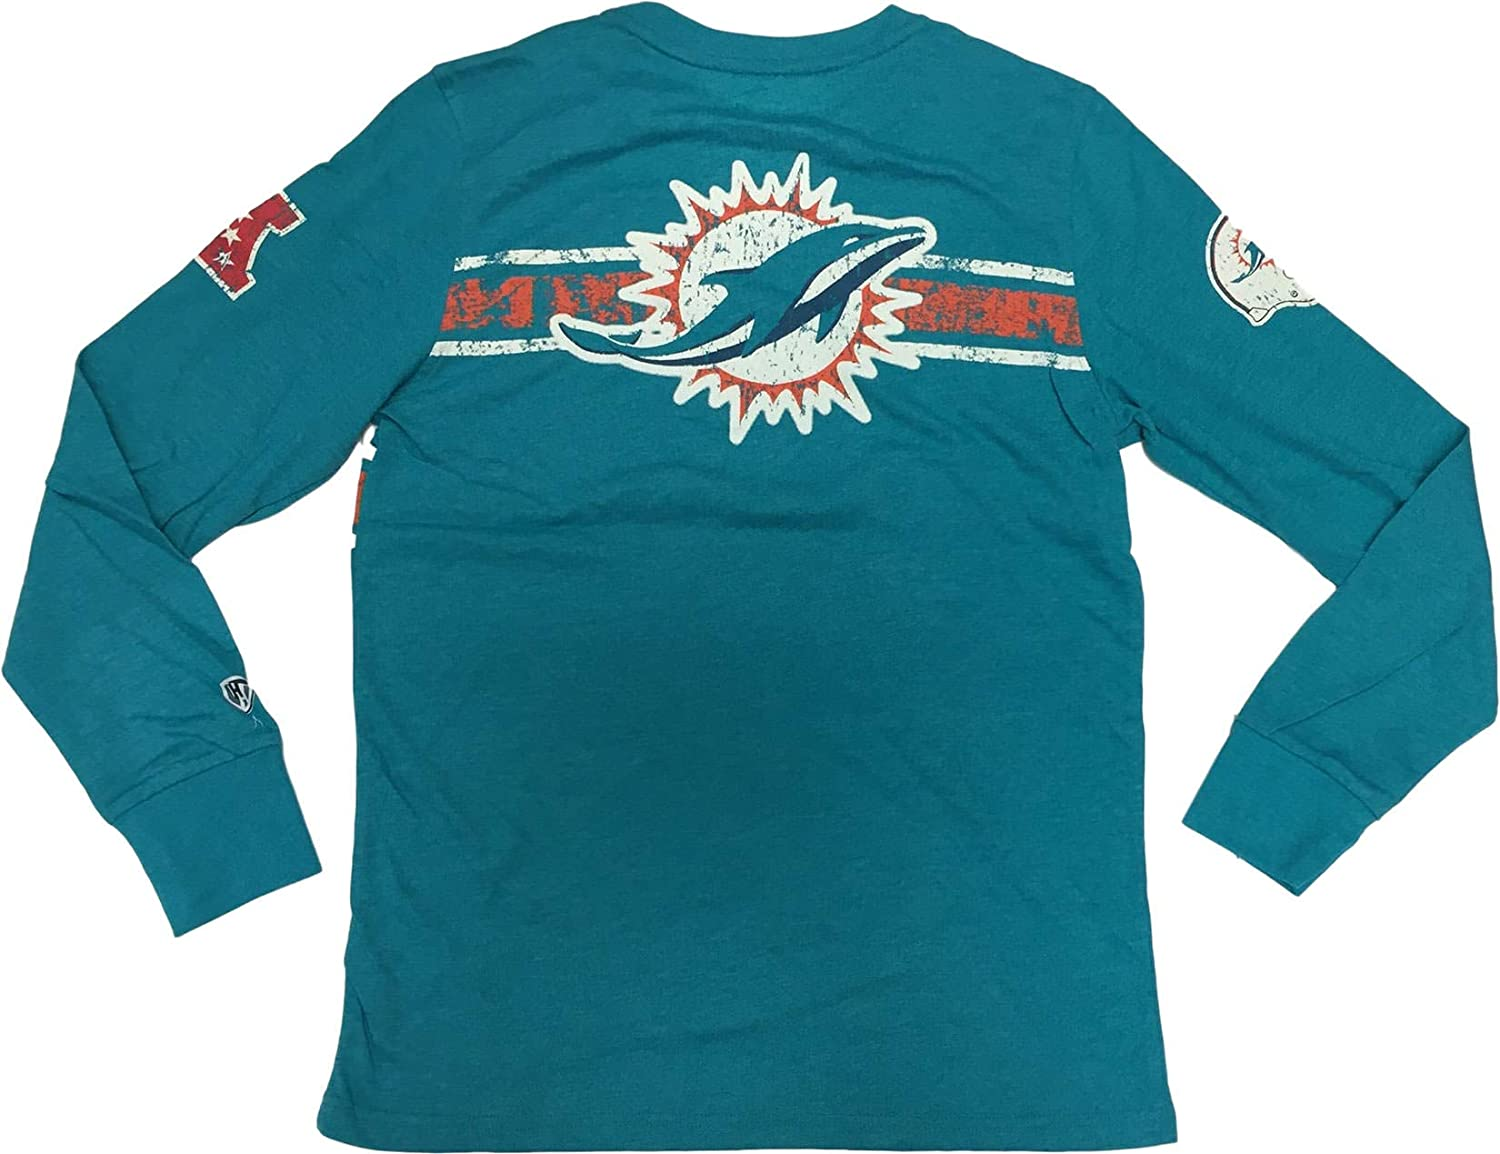 G-III Sports Miami Dolphins Mens Long Sleeve Teal Distressed Crew Neck T-Shirt